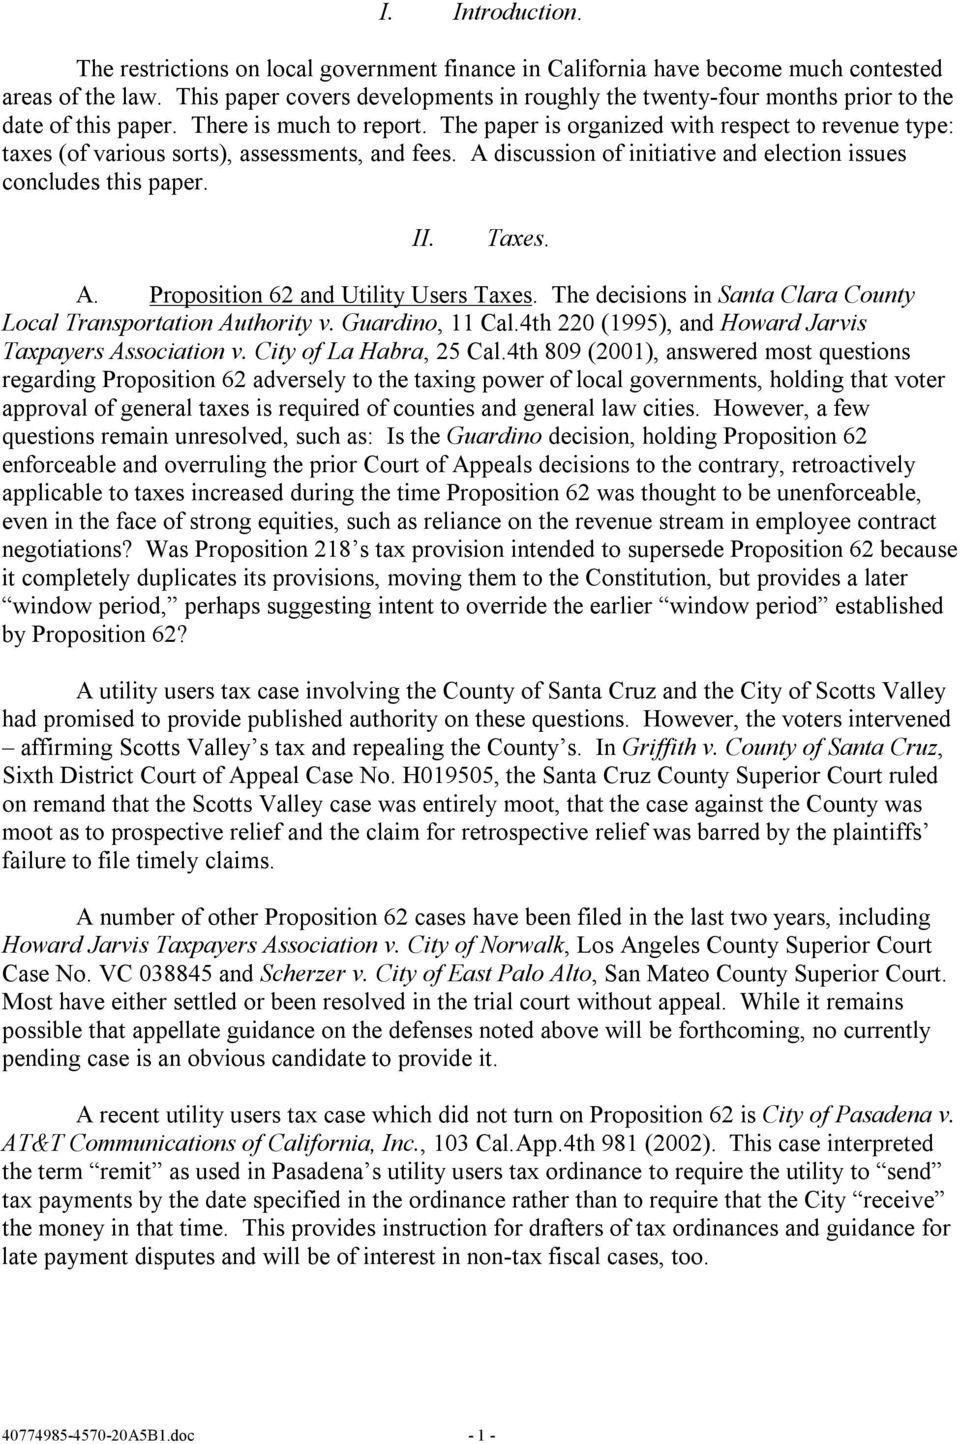 The paper is organized with respect to revenue type: taxes (of various sorts), assessments, and fees. A discussion of initiative and election issues concludes this paper. II. Taxes. A. Proposition 62 and Utility Users Taxes.